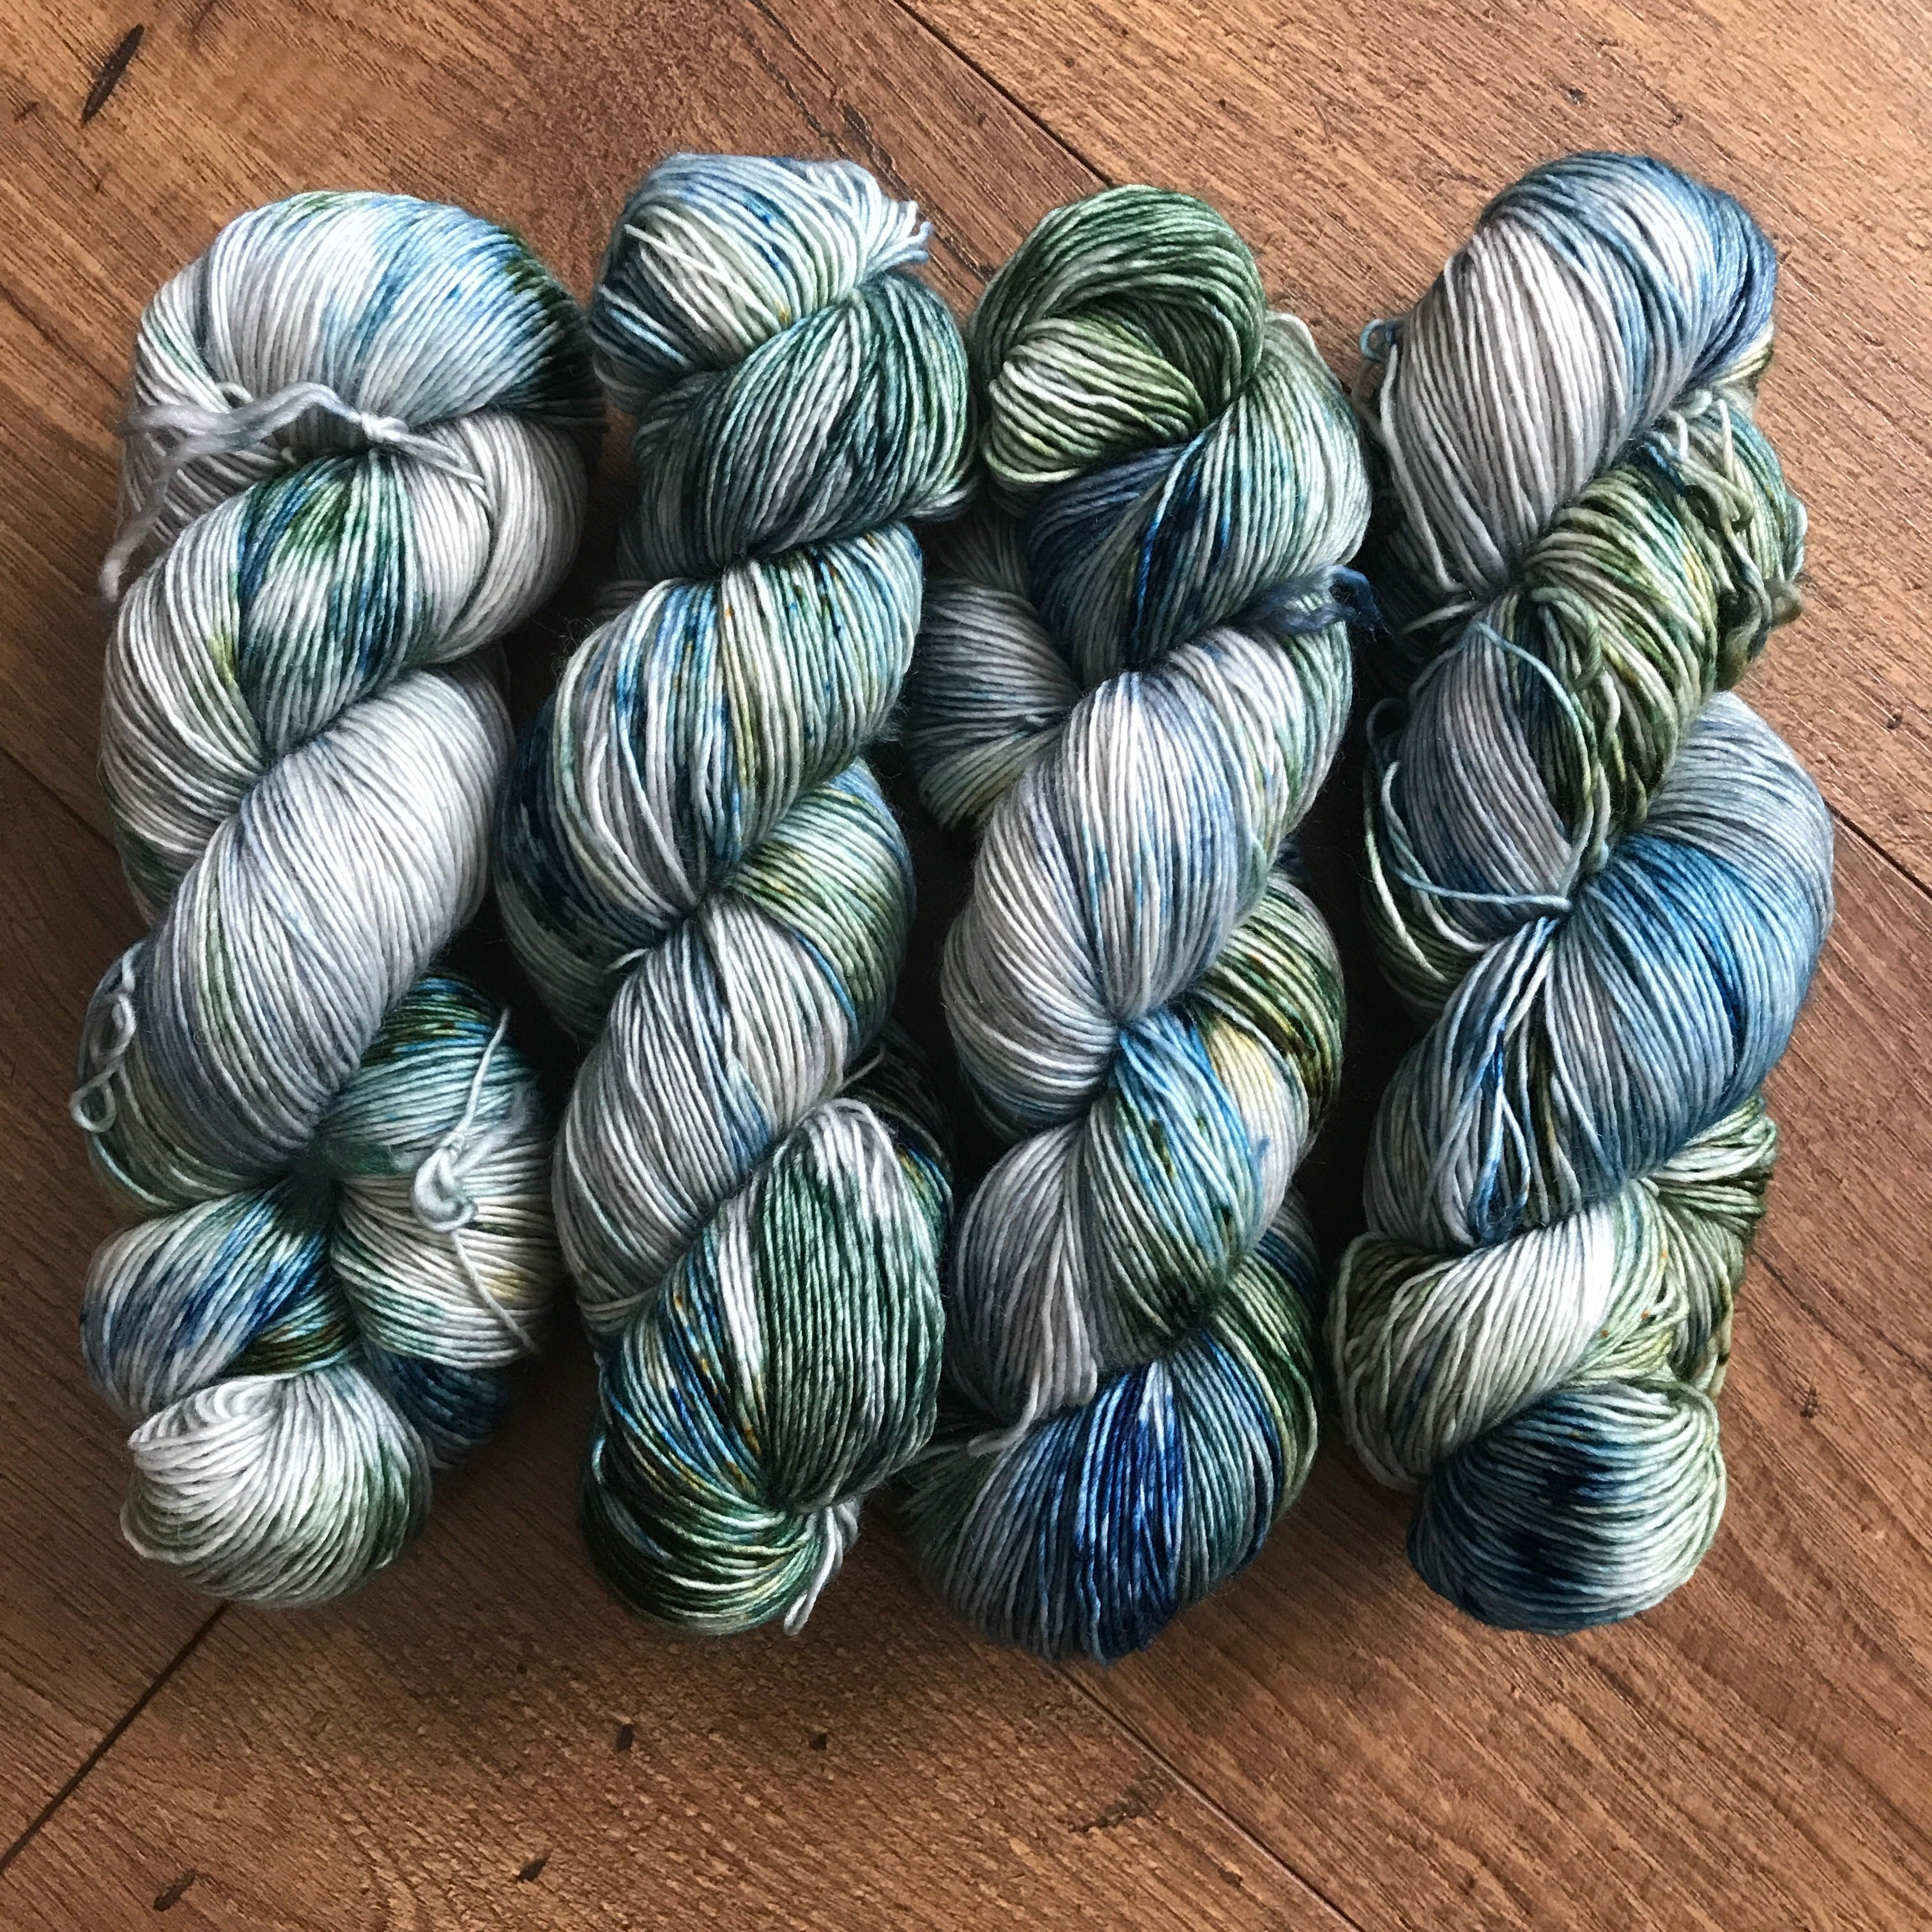 Cliffside - Singleton - Red Sock Blue Sock Yarn Co